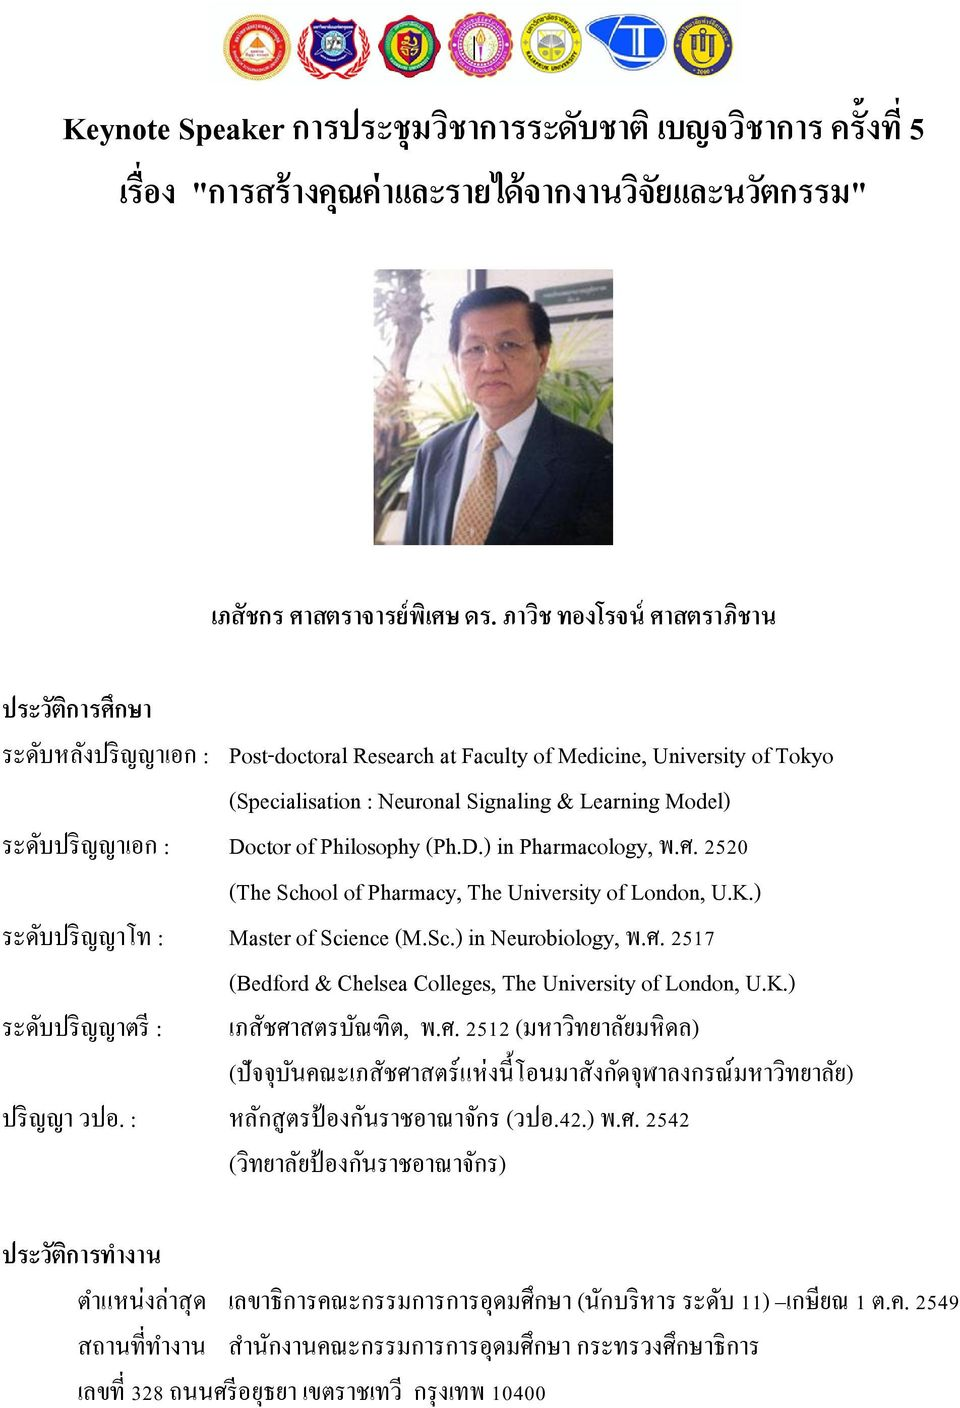 : Doctor of Philosophy (Ph.D.) in Pharmacology, พ.ศ. 2520 (The School of Pharmacy, The University of London, U.K.) ระด บปร ญญาโท : Master of Science (M.Sc.) in Neurobiology, พ.ศ. 2517 (Bedford & Chelsea Colleges, The University of London, U.